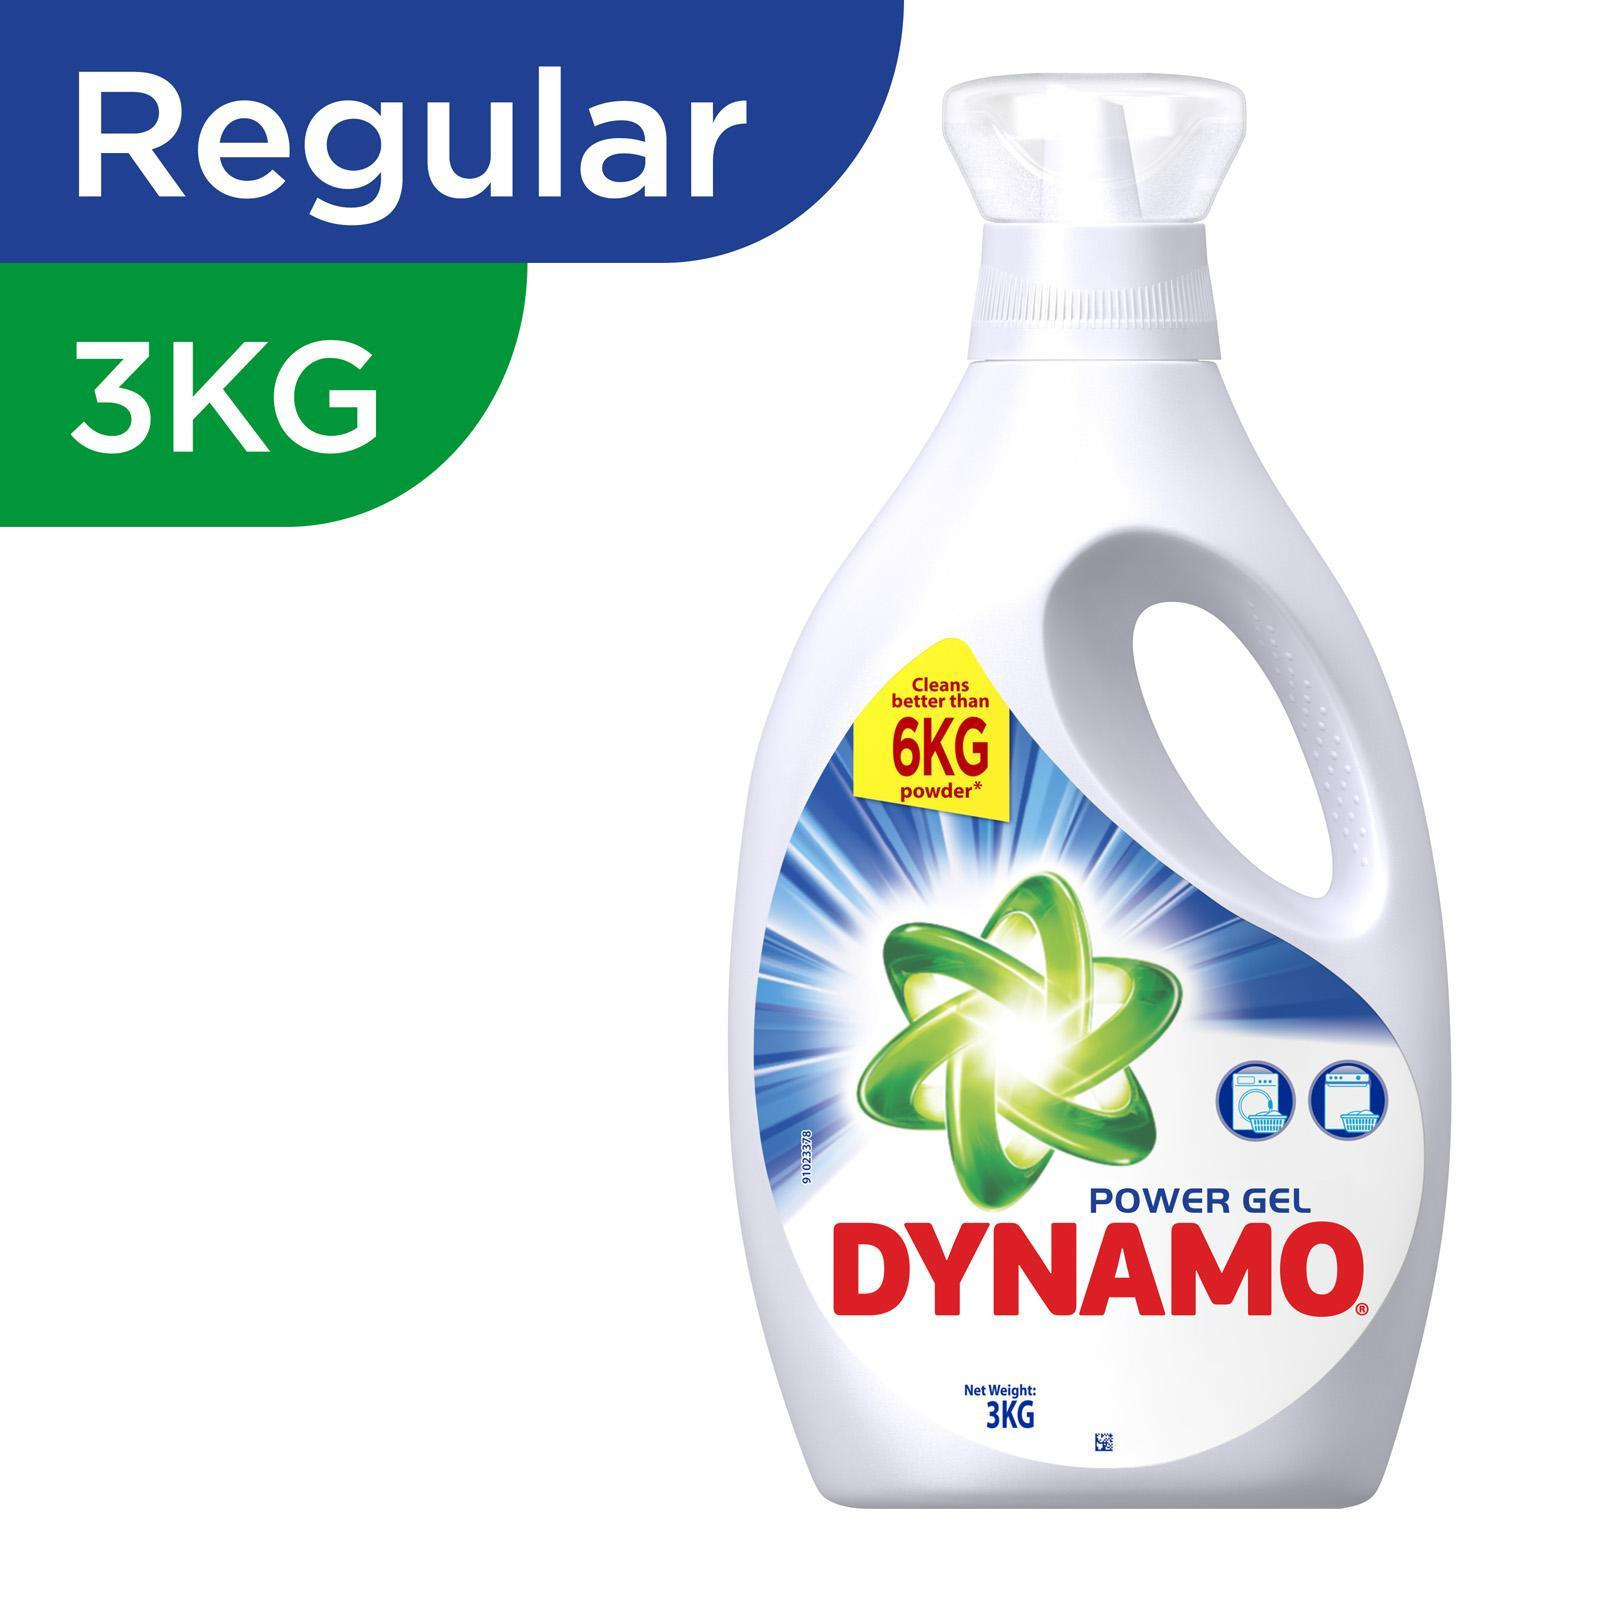 DYNAMO Laundry Liquid Regular Power Gel 3kg